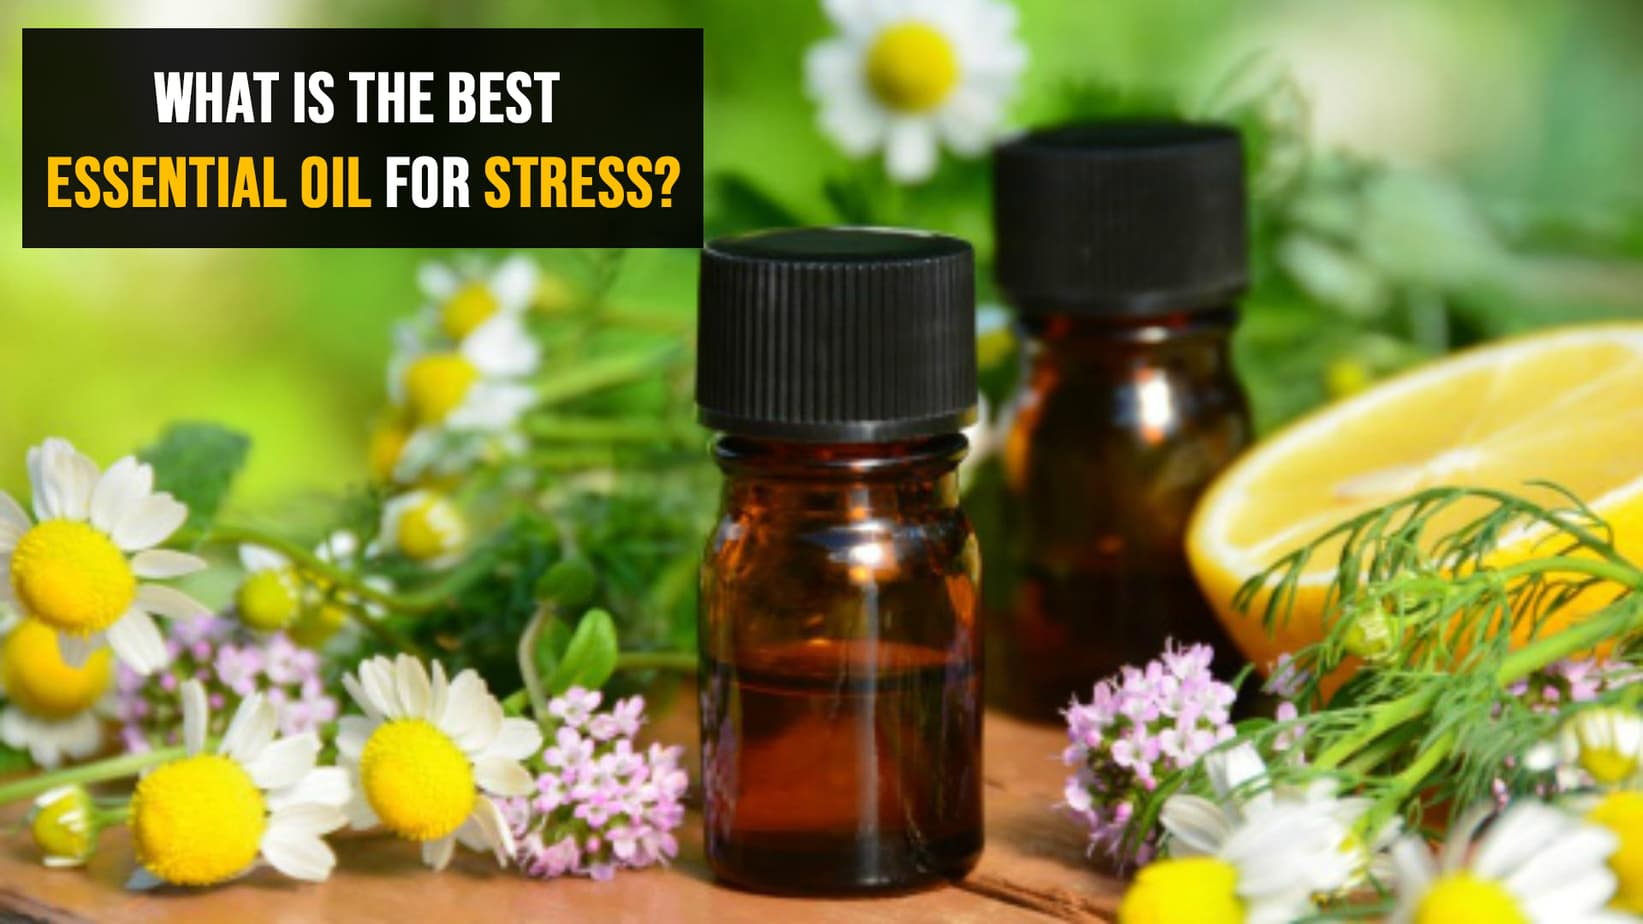 Photo of Aromatherapy & Vital Oils for Relaxation and Stress Release